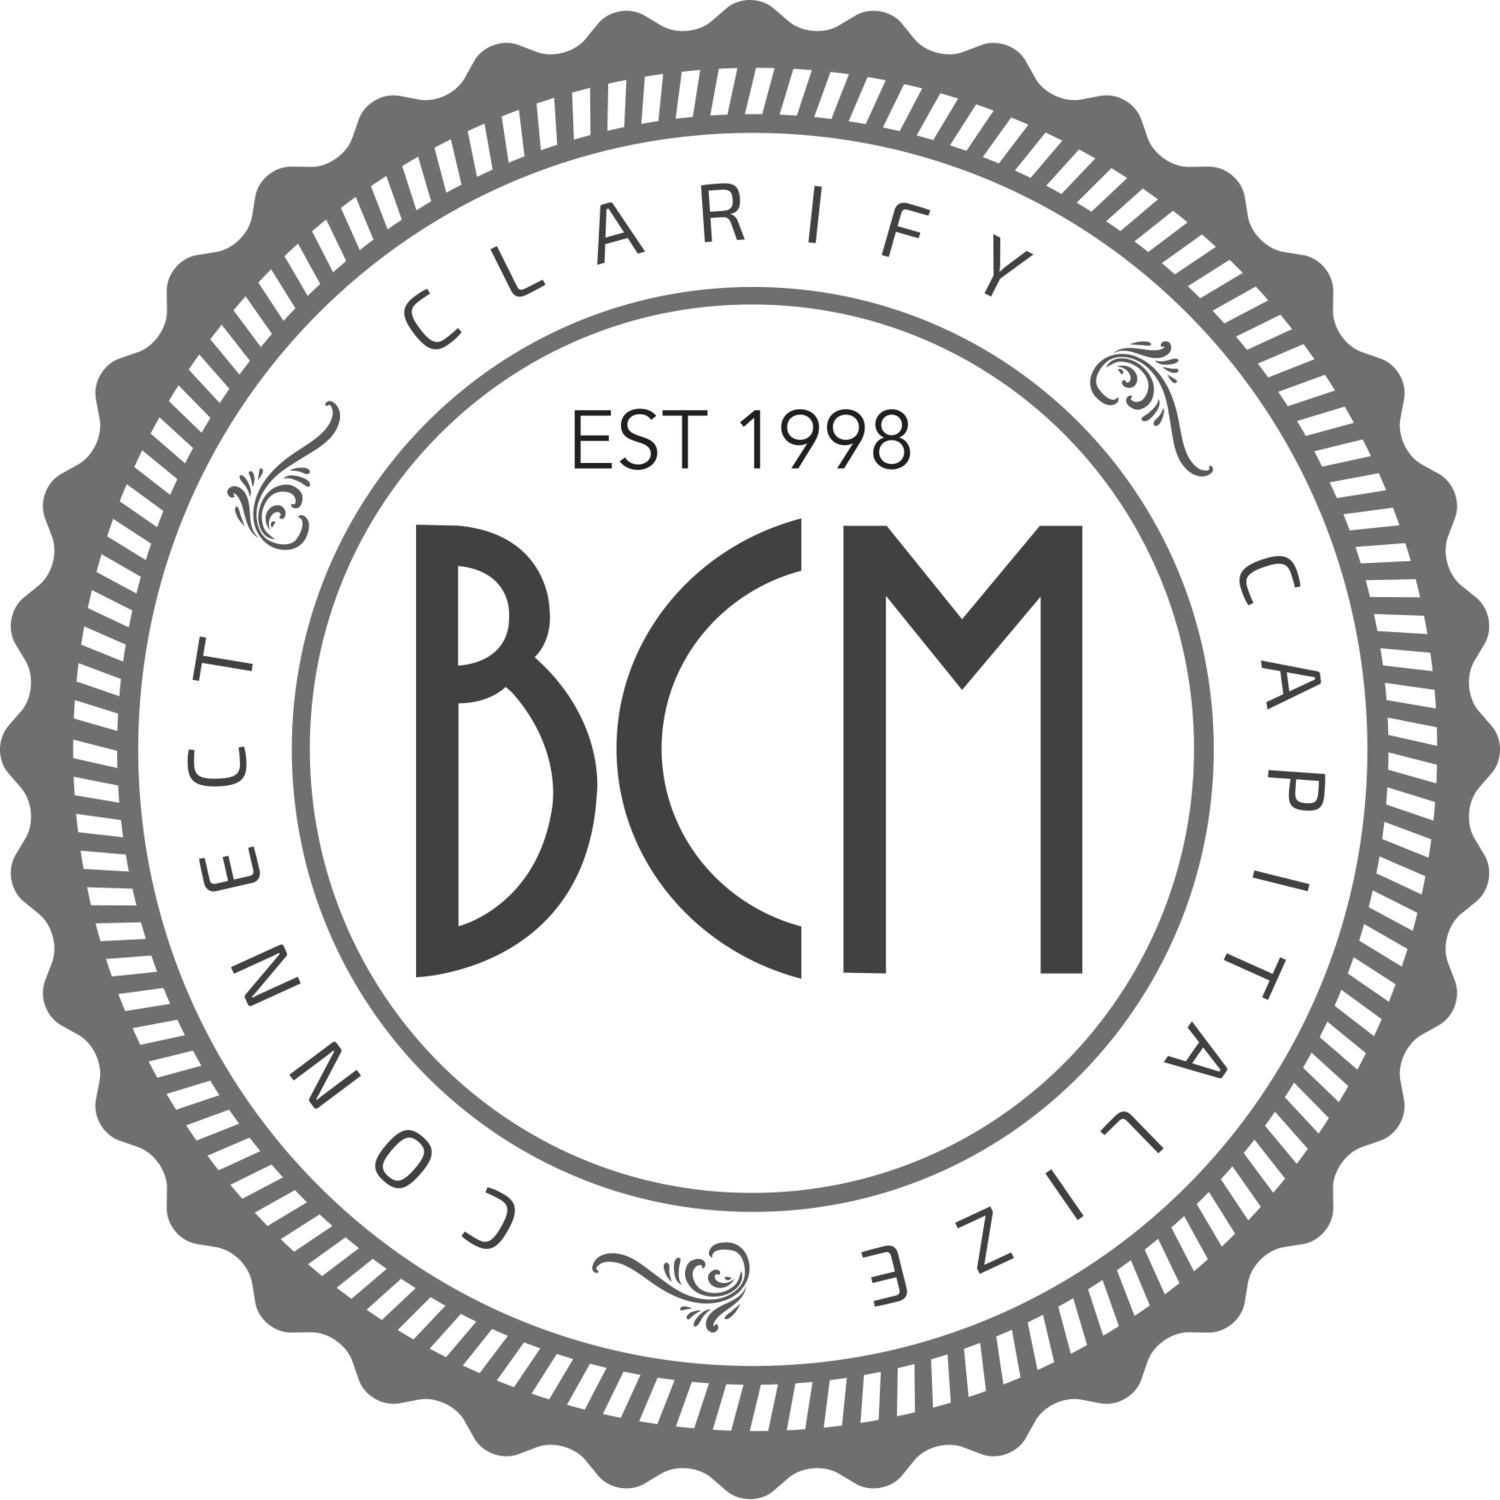 Barry Capital Management